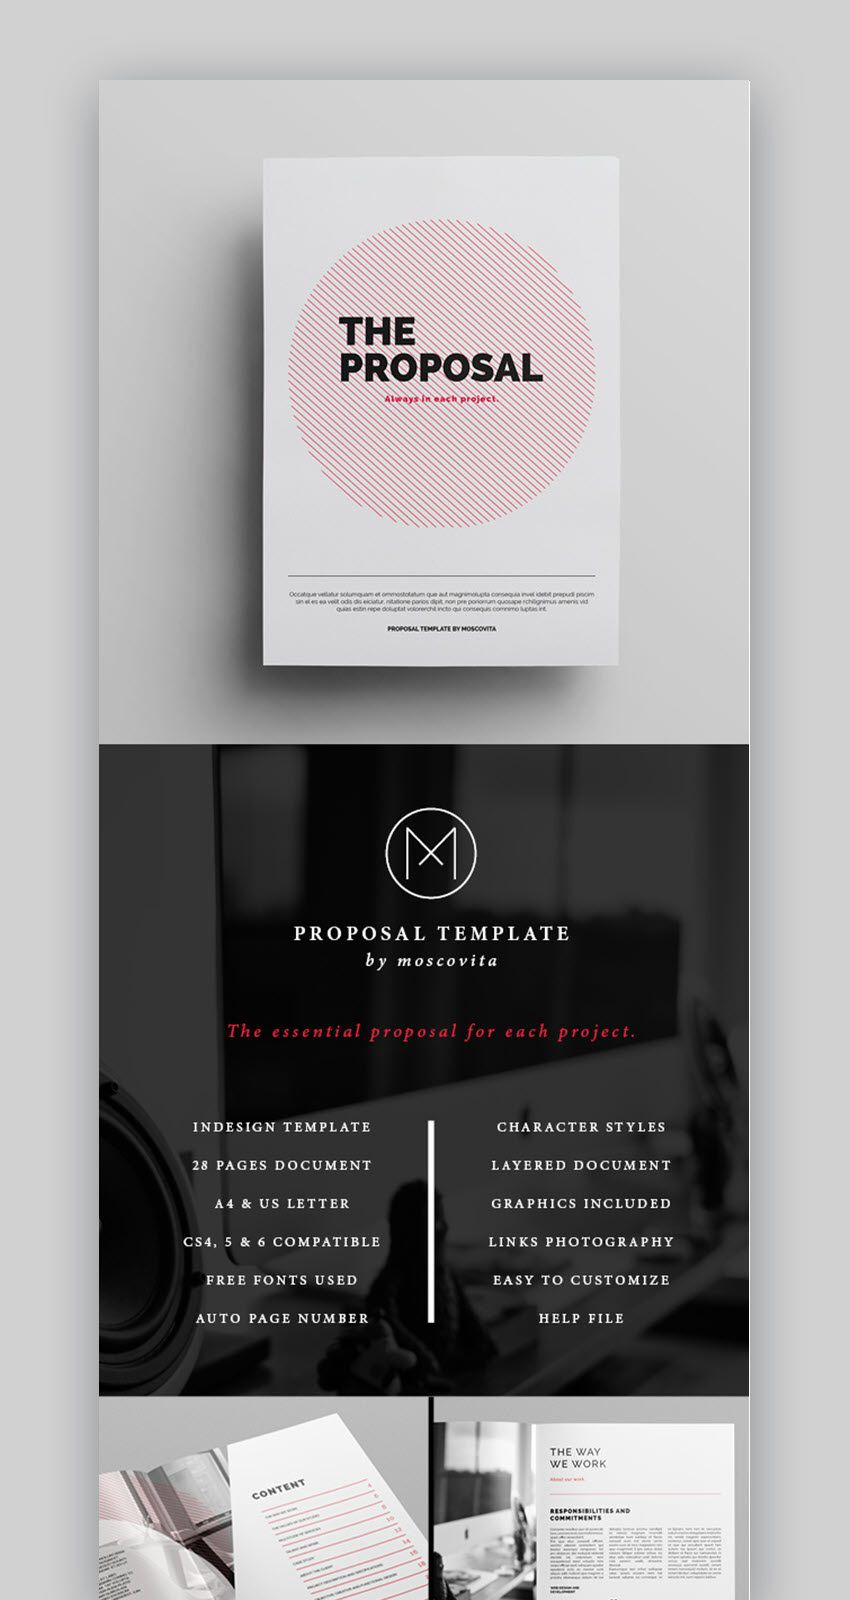 005 Frightening Web Design Proposal Template Free Download High Def Full